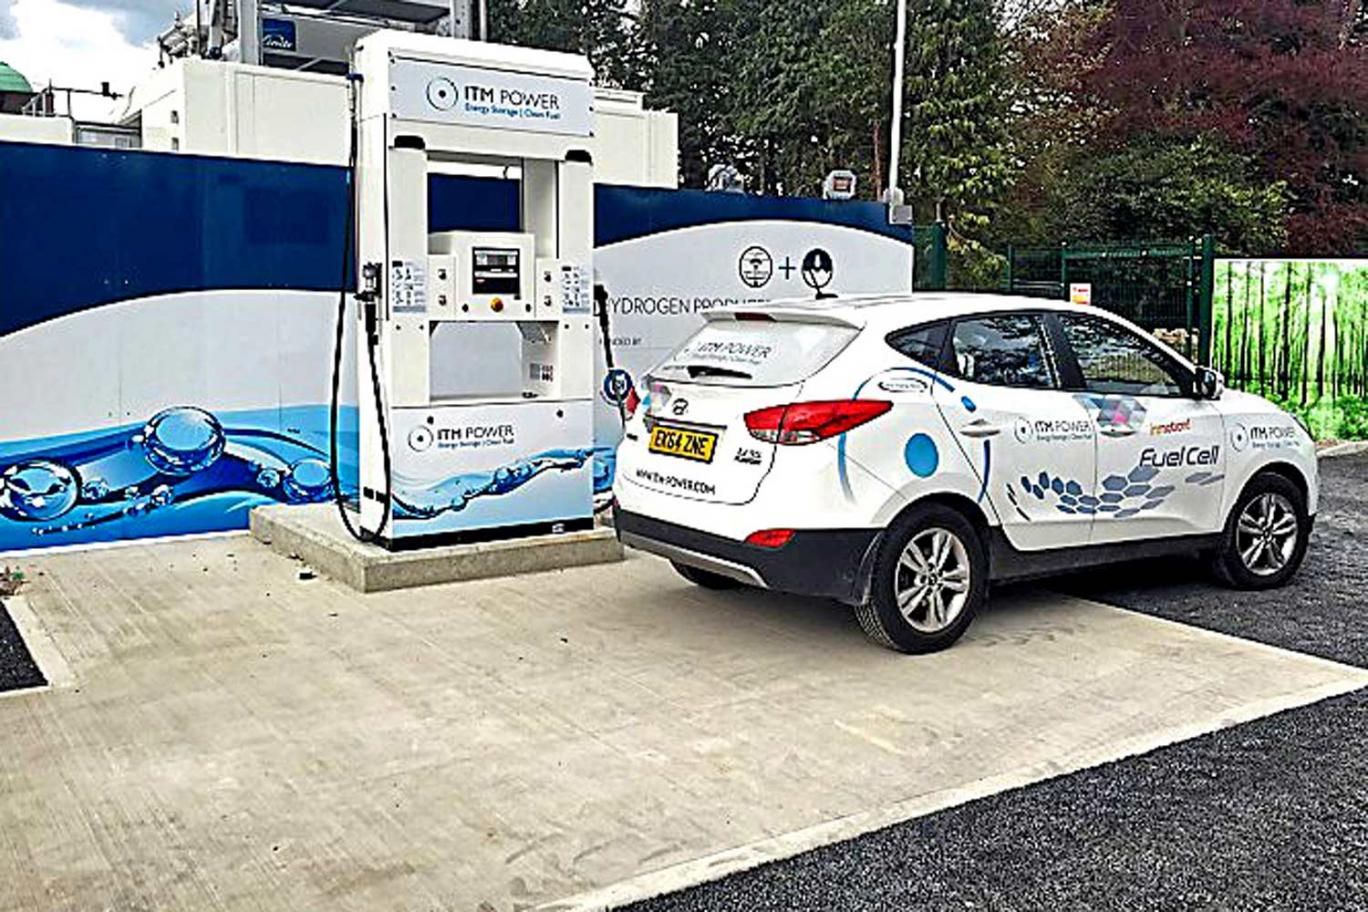 plan for hydrogen powered vehicles entering hong Registrations of hybrid, electric and hydrogen powered vehicles increased by 432 per cent in q1, taking the tally to 21,320 units sold in the first three months.